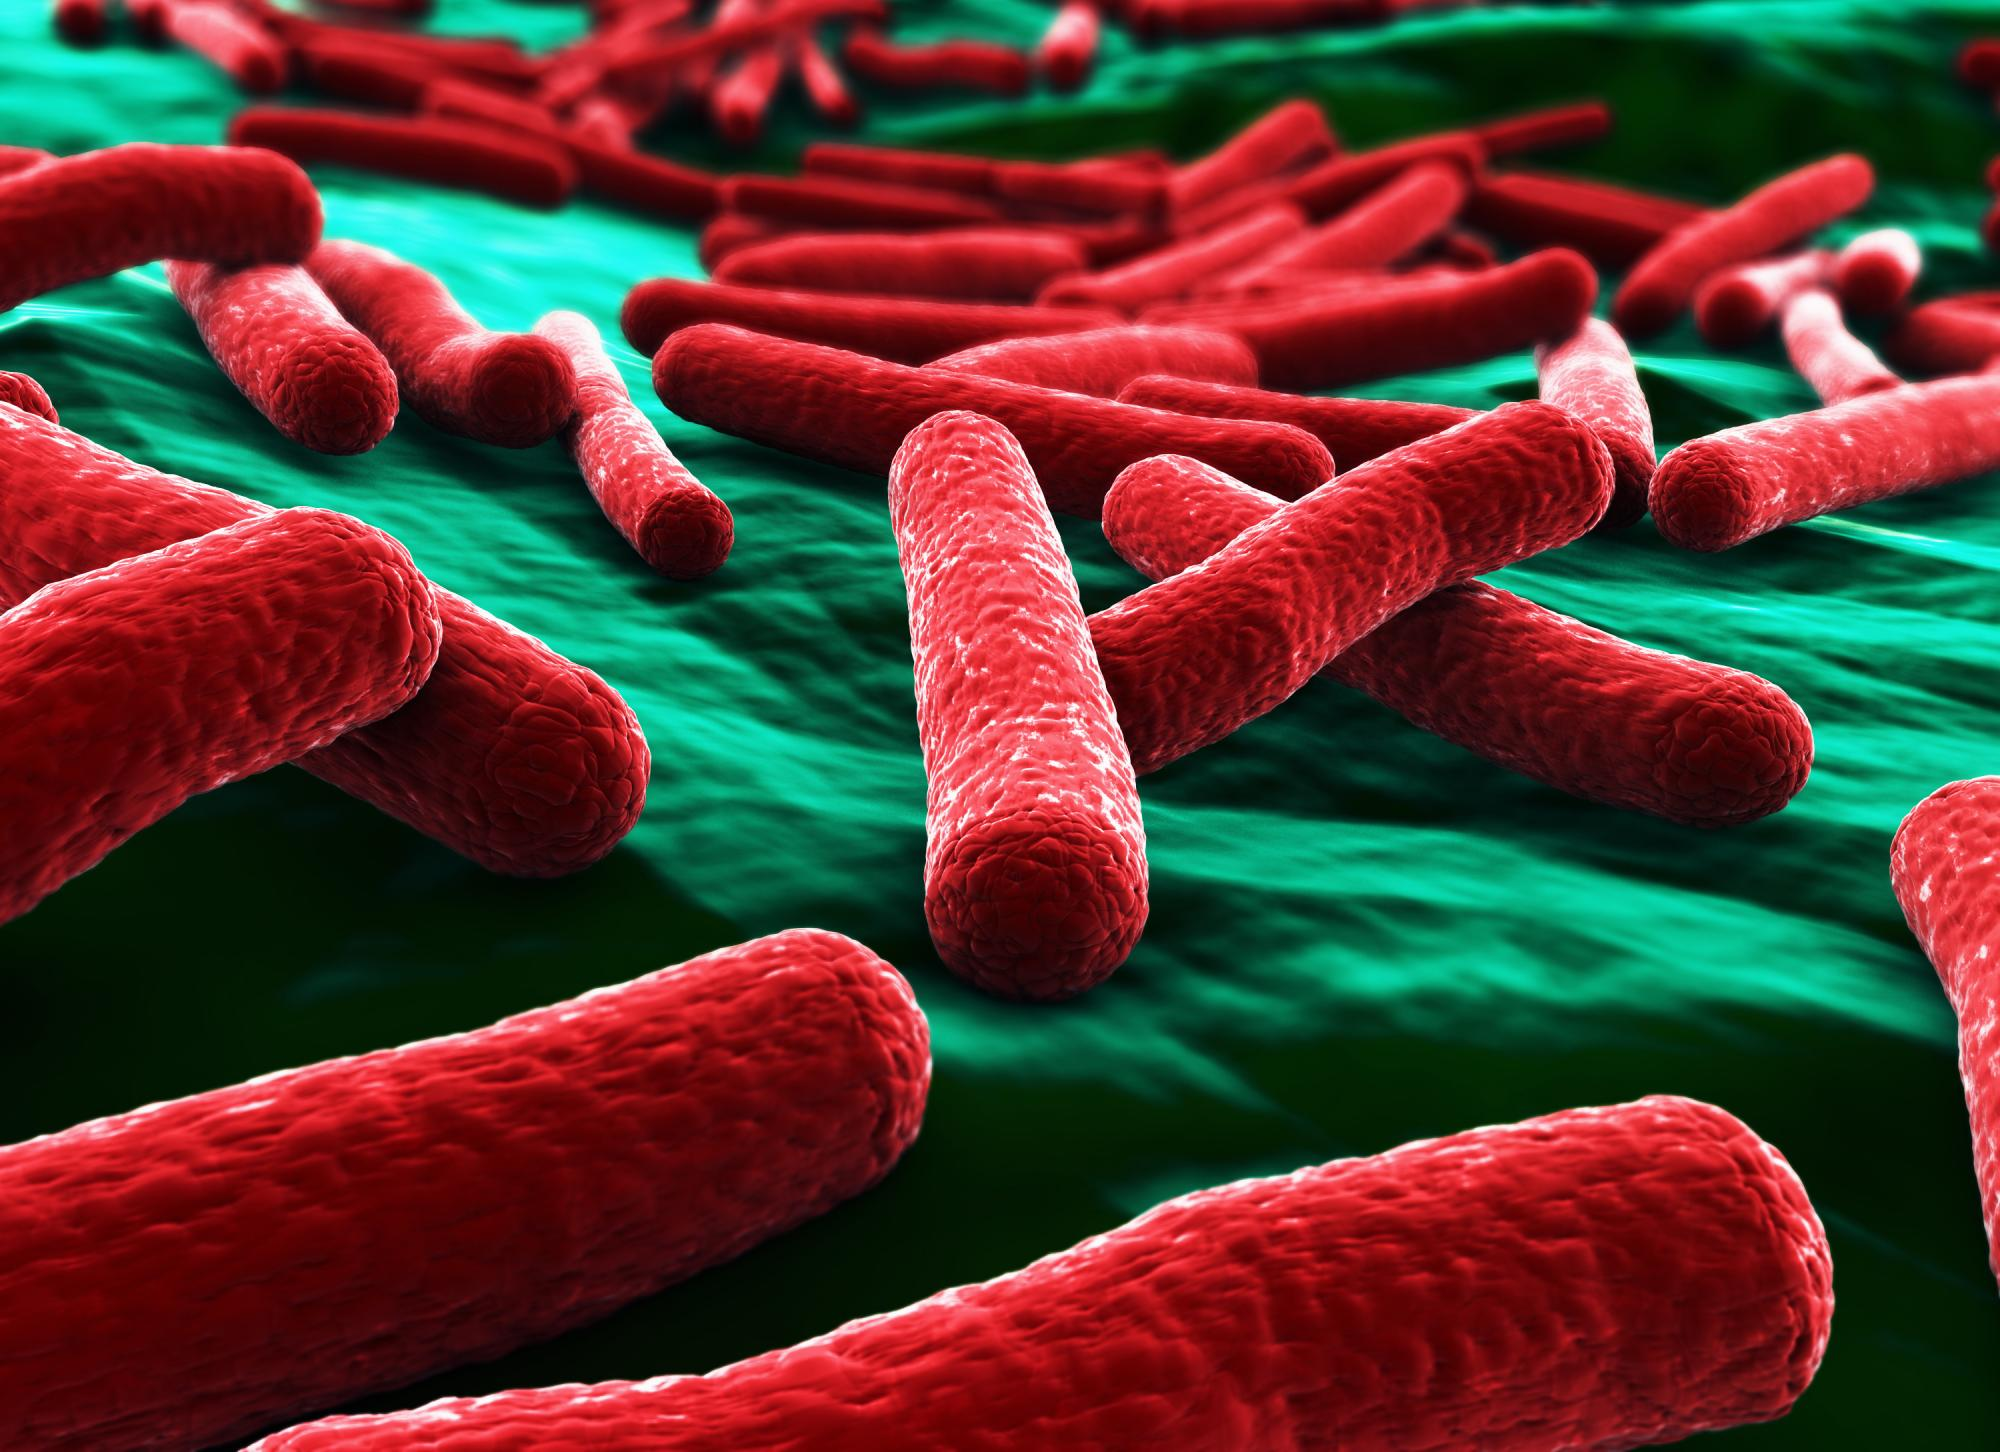 E. coli bacteria close up in red on green background